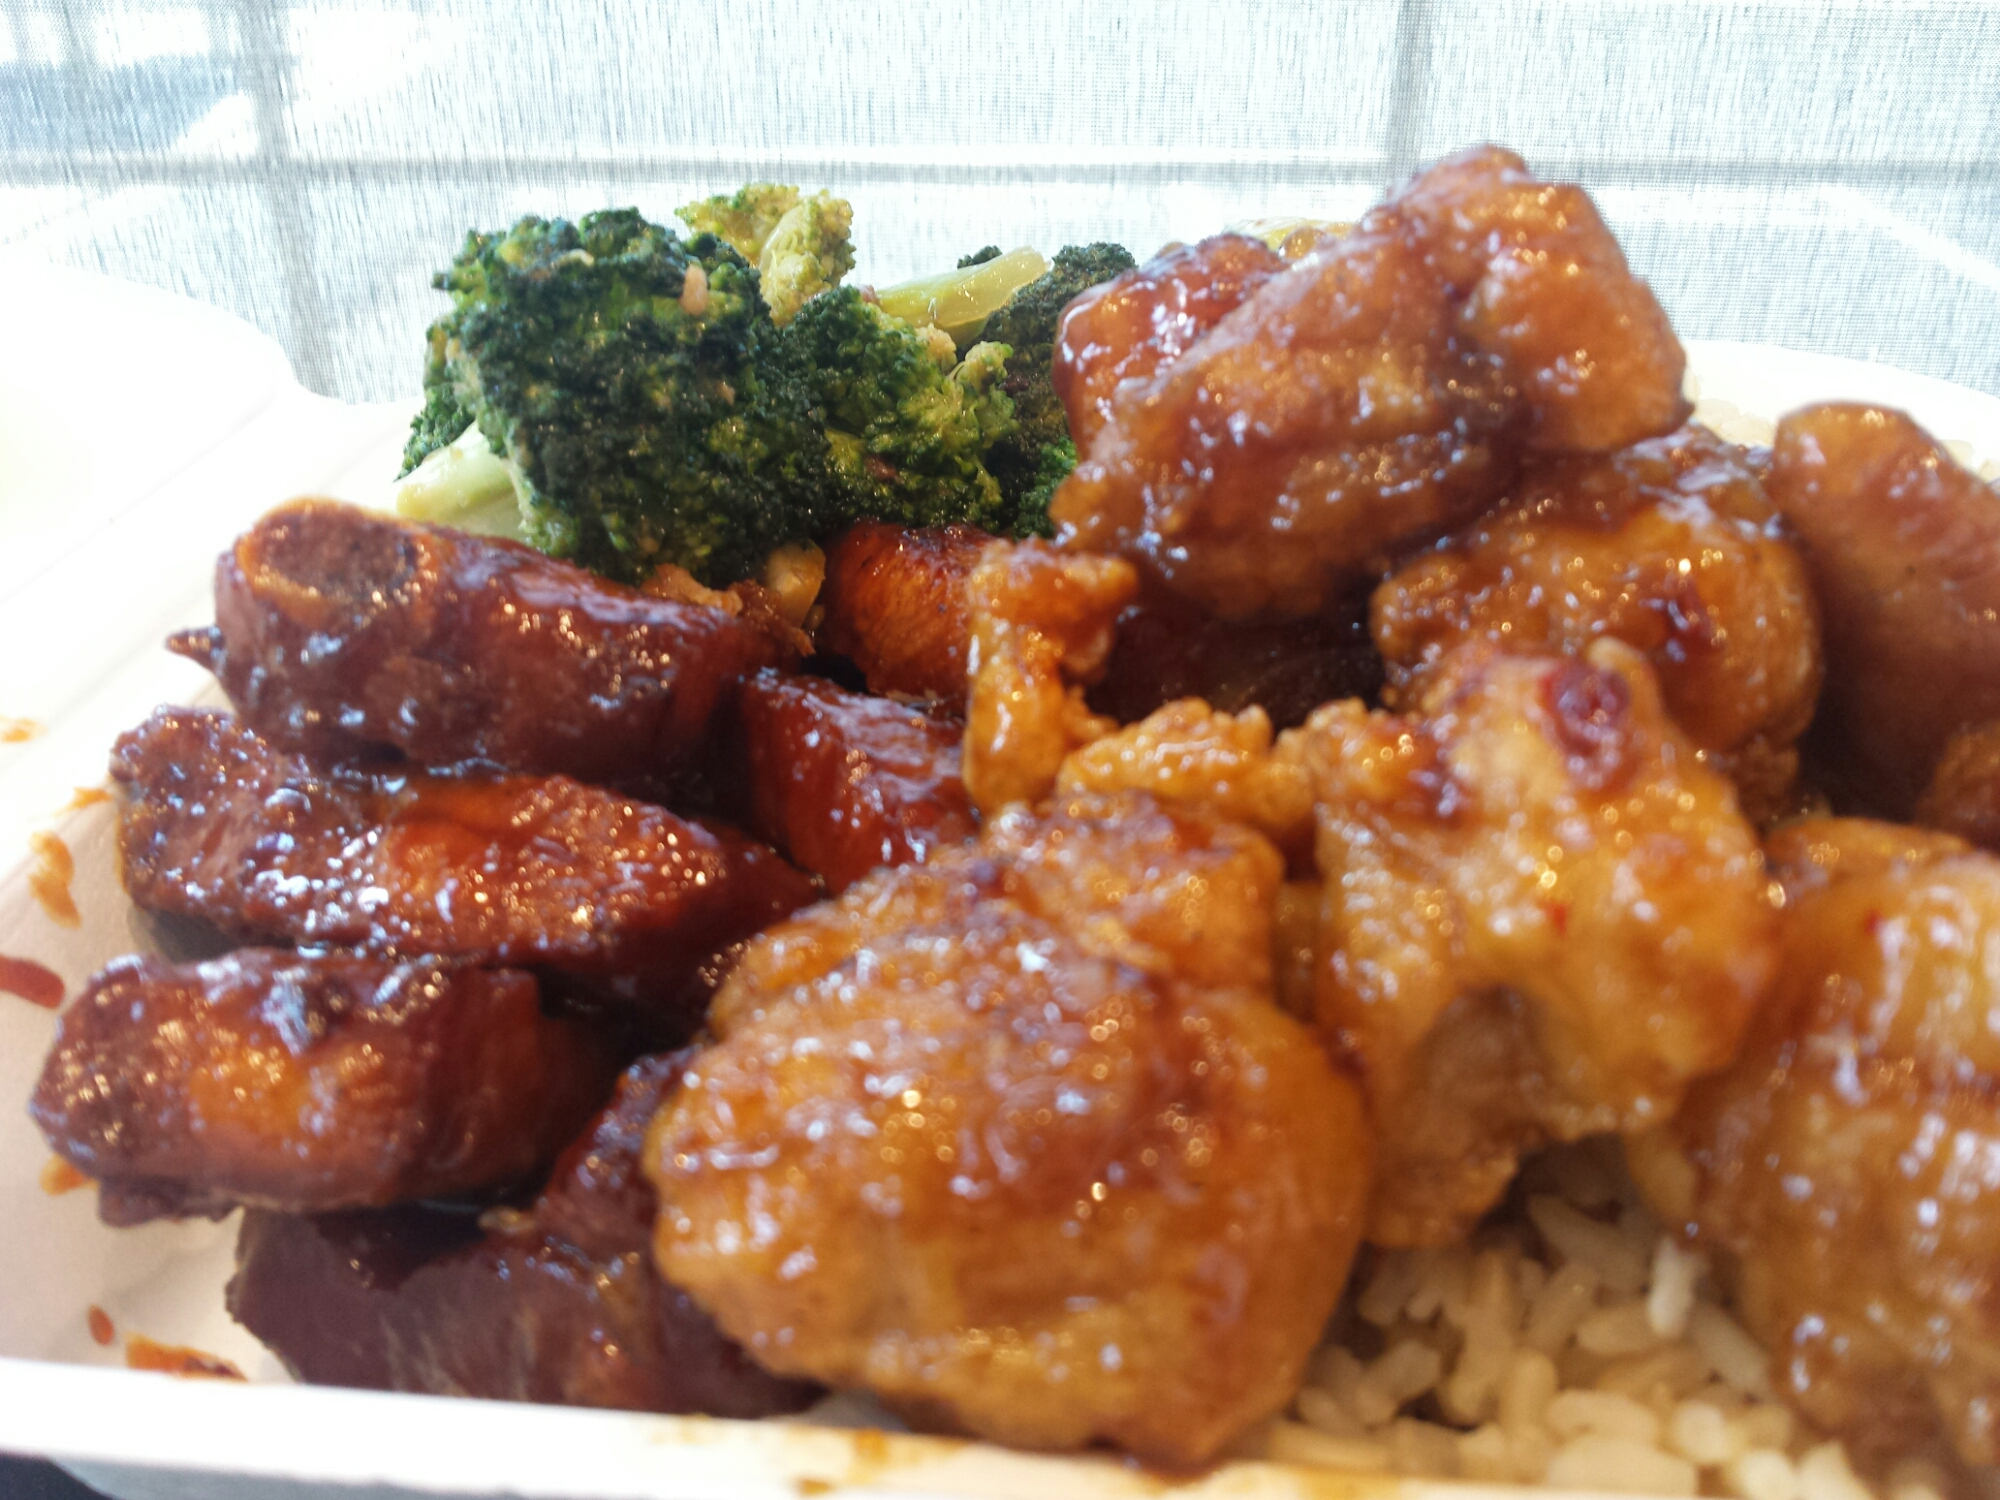 Chinese Spare Ribs, Orange Chicken, Beef Broccoli, Brown Rice